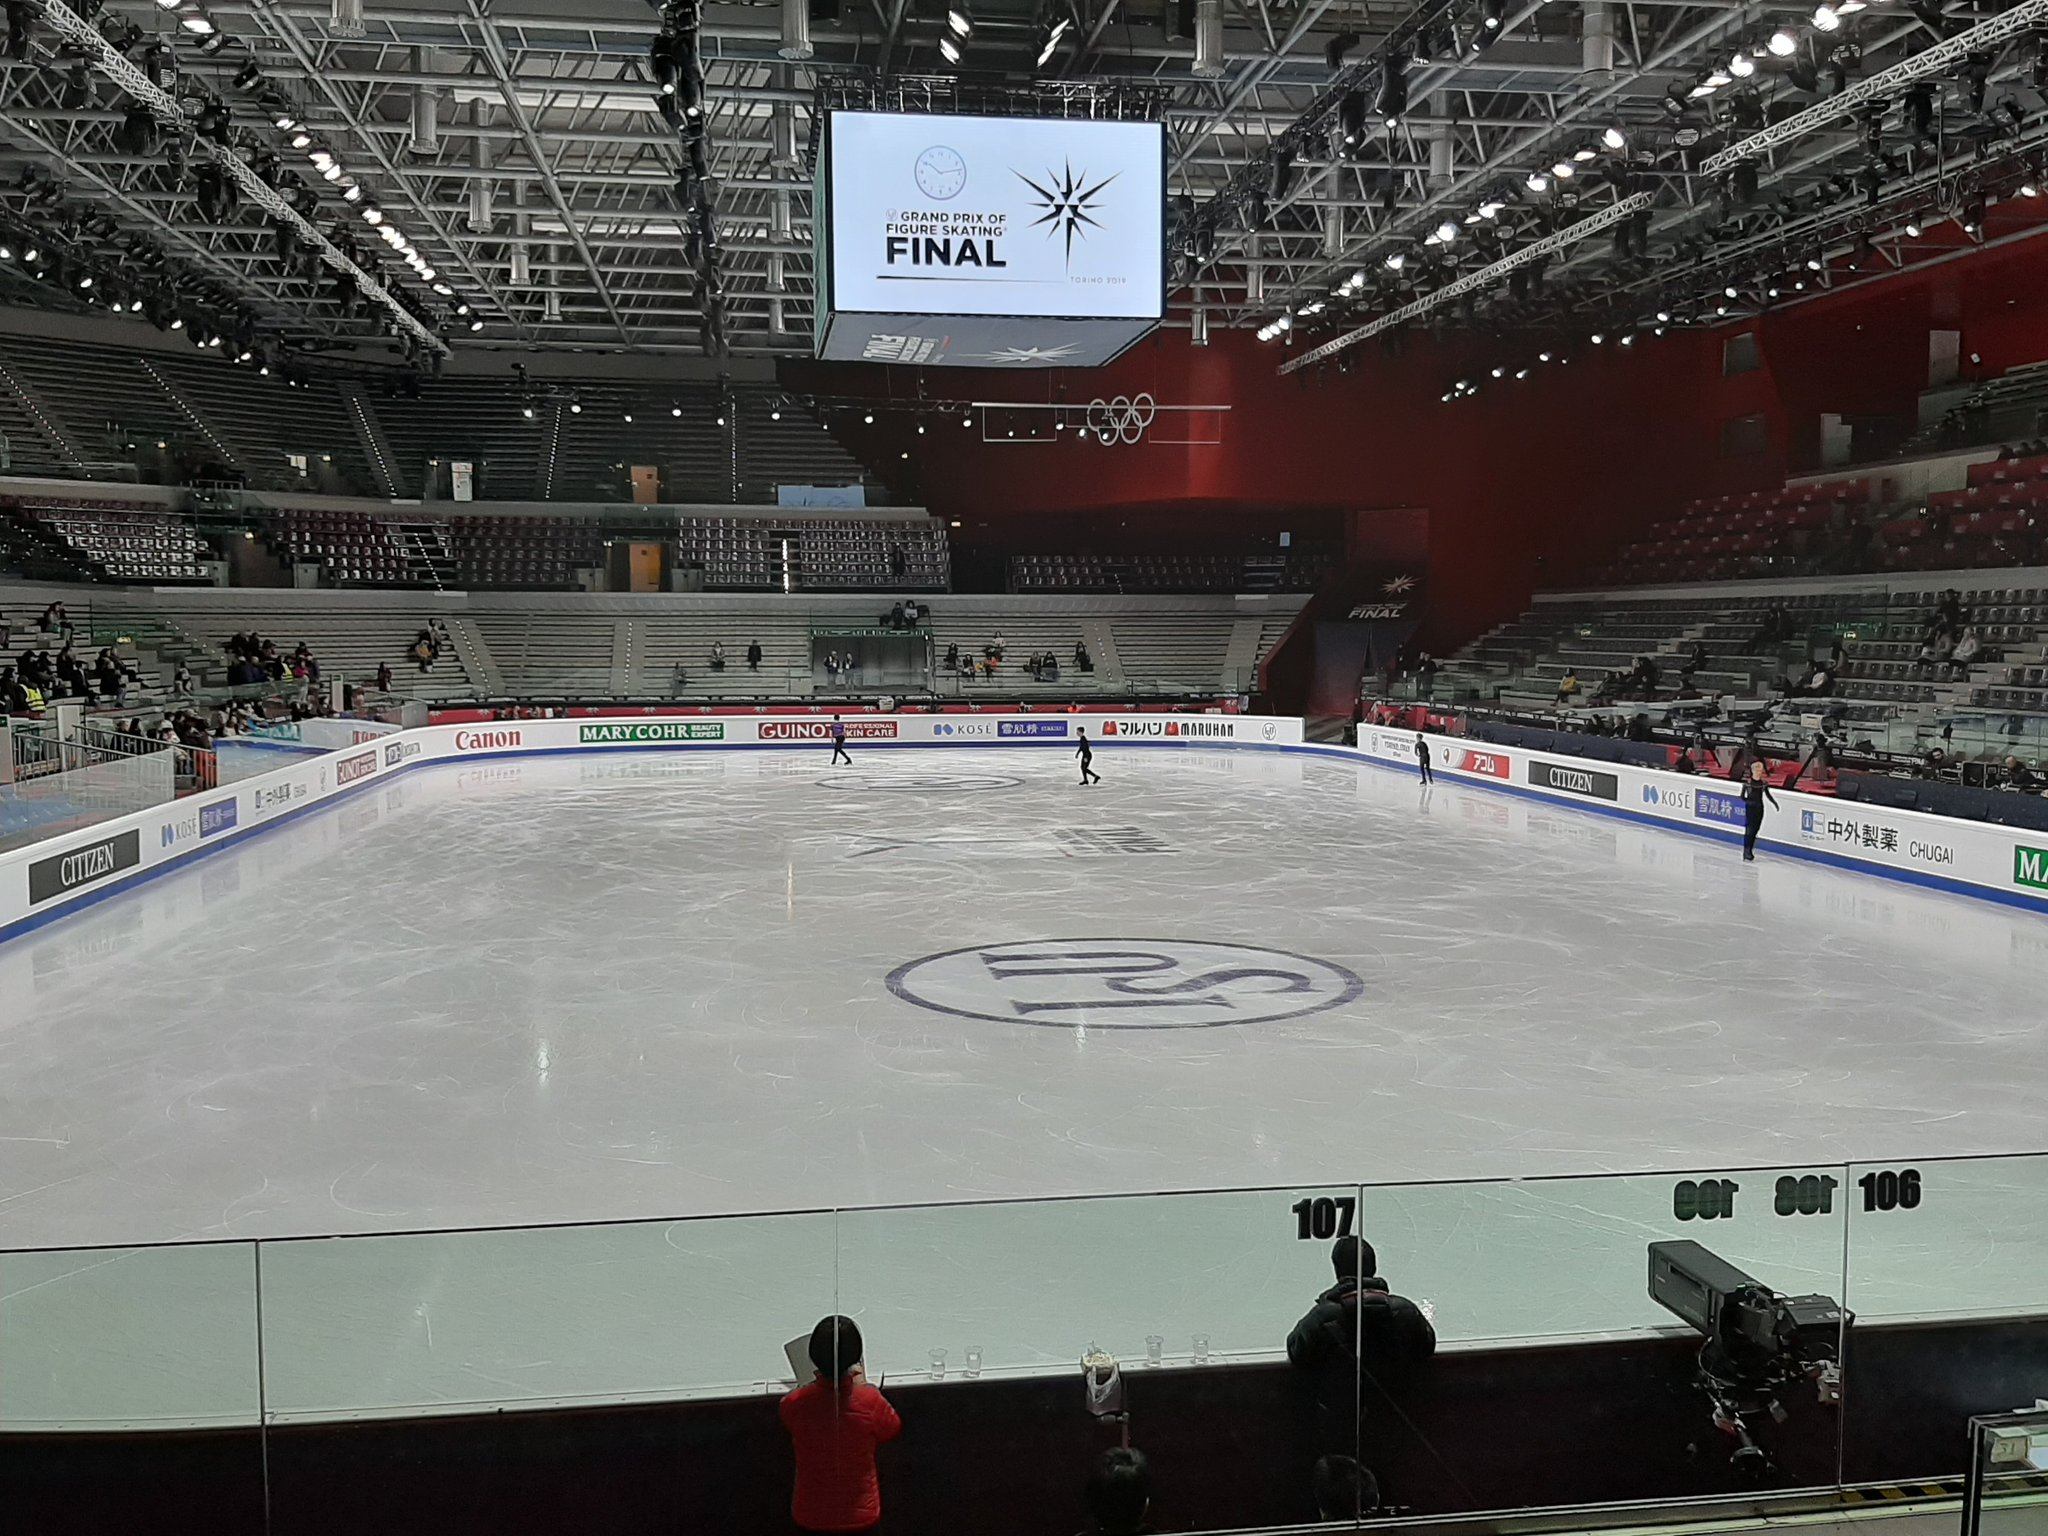 ISU Grand Prix of Figure Skating Final (Senior & Junior). Dec 05 - Dec 08, 2019.  Torino /ITA  - Страница 4 EK7qA8hWkAAcb_A?format=jpg&name=4096x4096